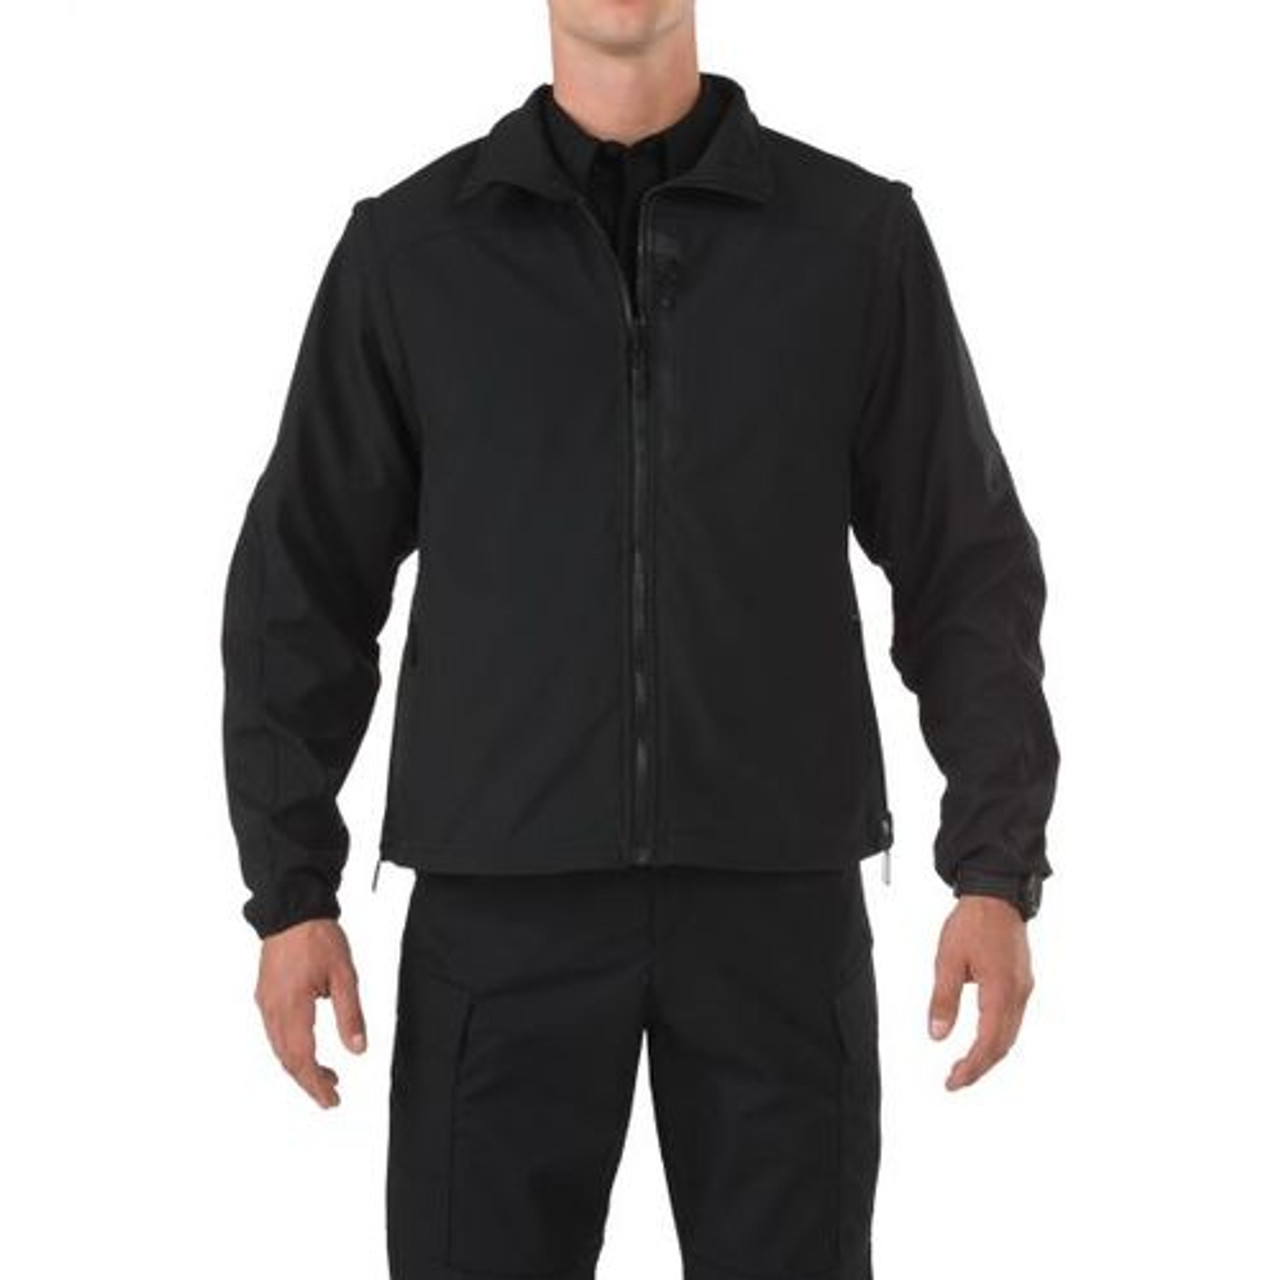 5.11 Tactical 48153 VALIANT, Uniform or Casual Jacket, 5-in-1, Roll-Up Hood, Adjustable Cuffs